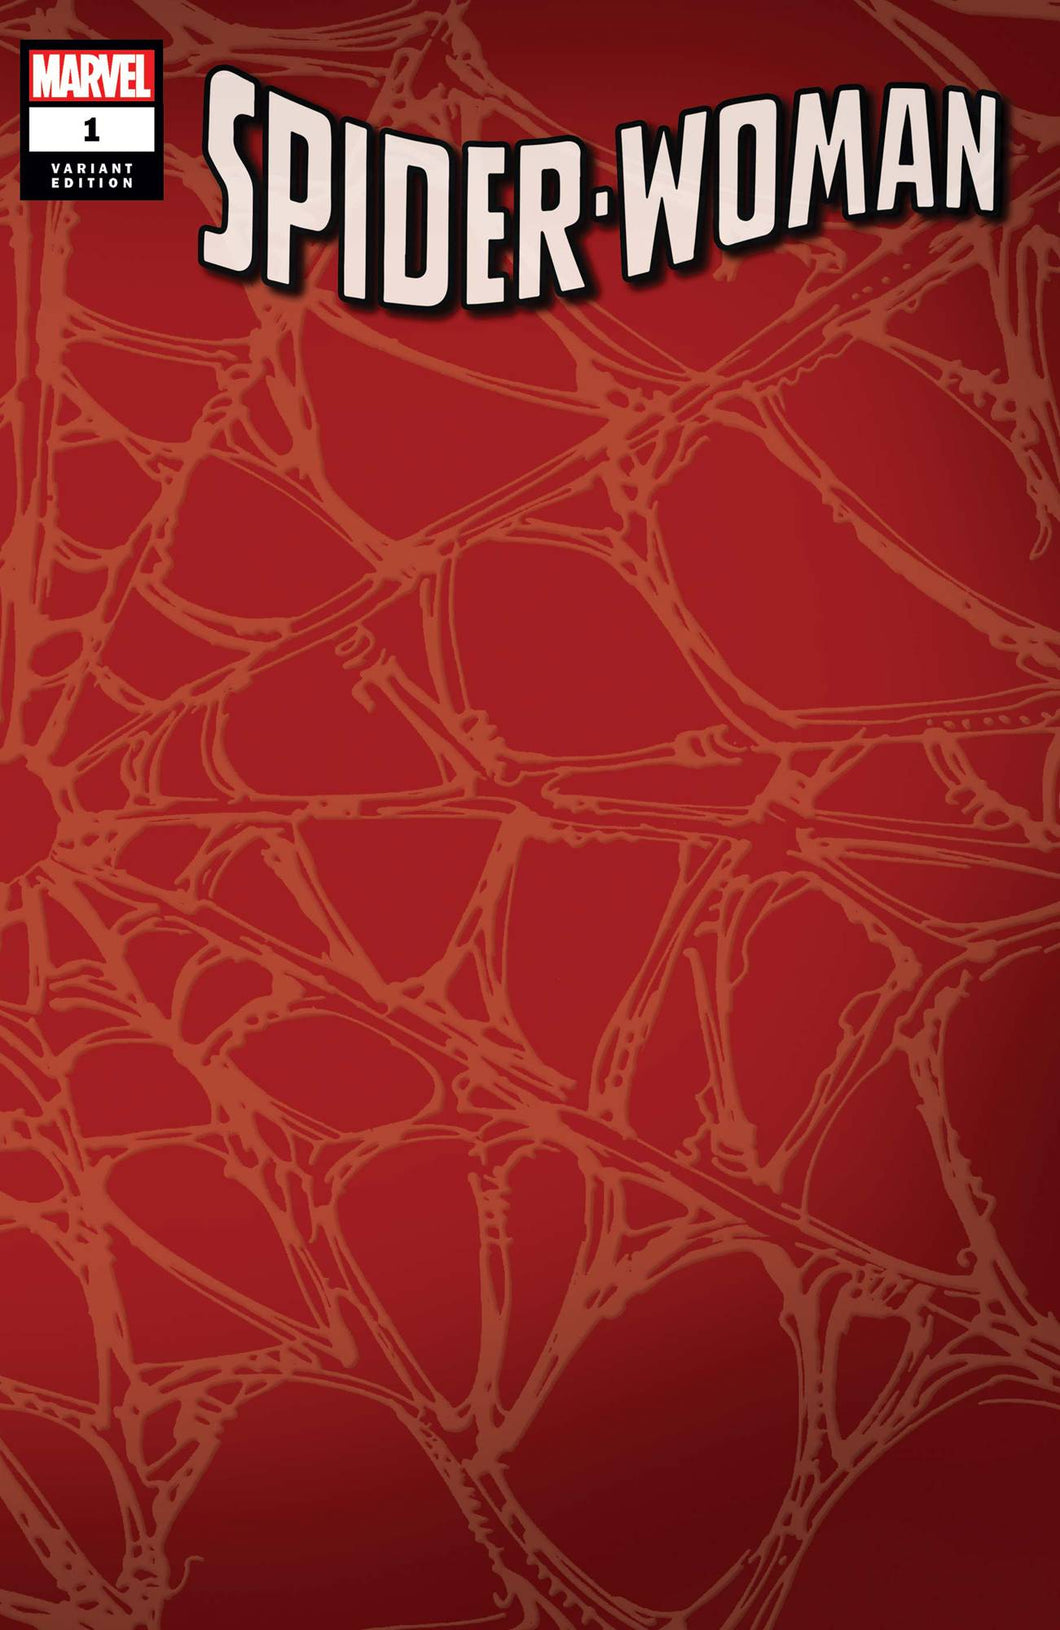 Spider-Woman #1 Ratio Variants